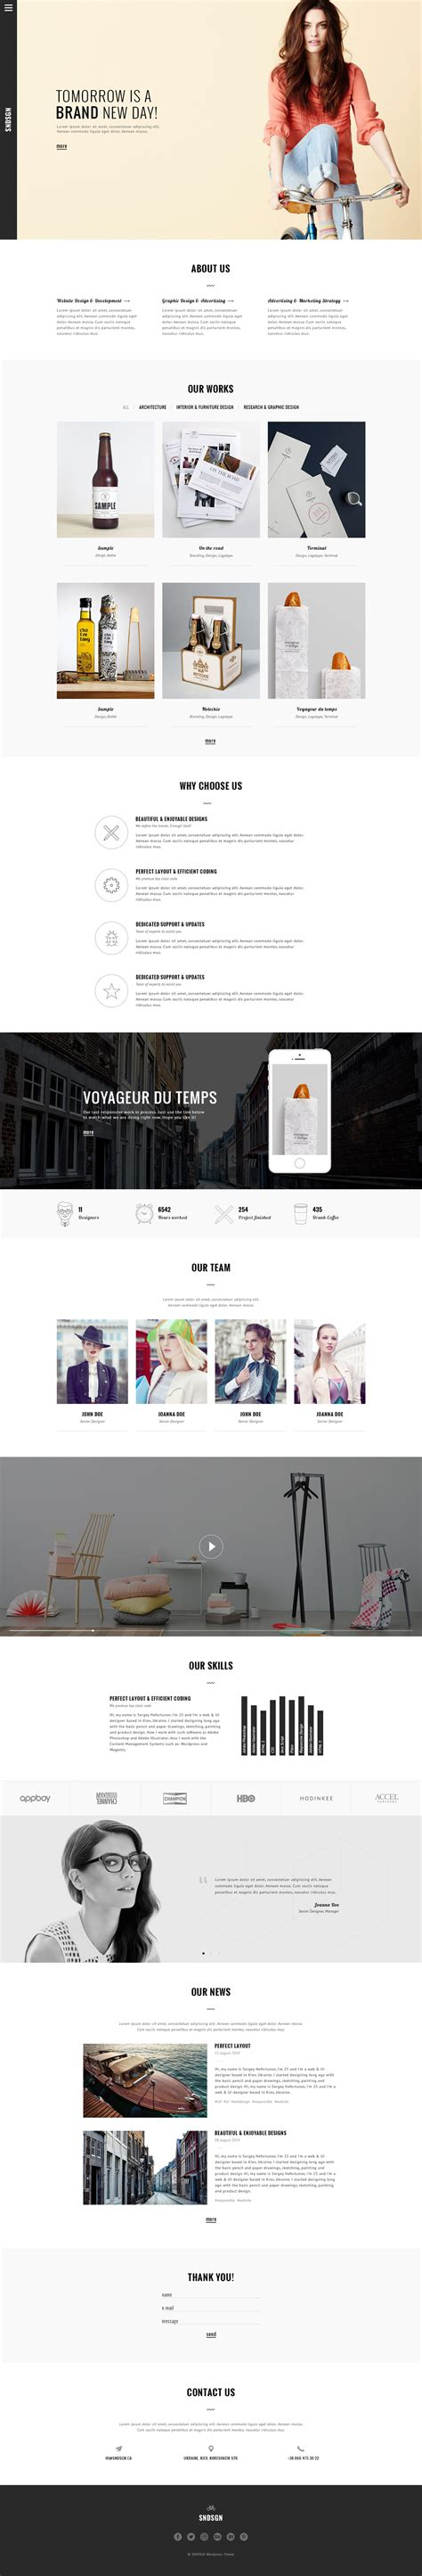 free one page website psd template graphicsfuel